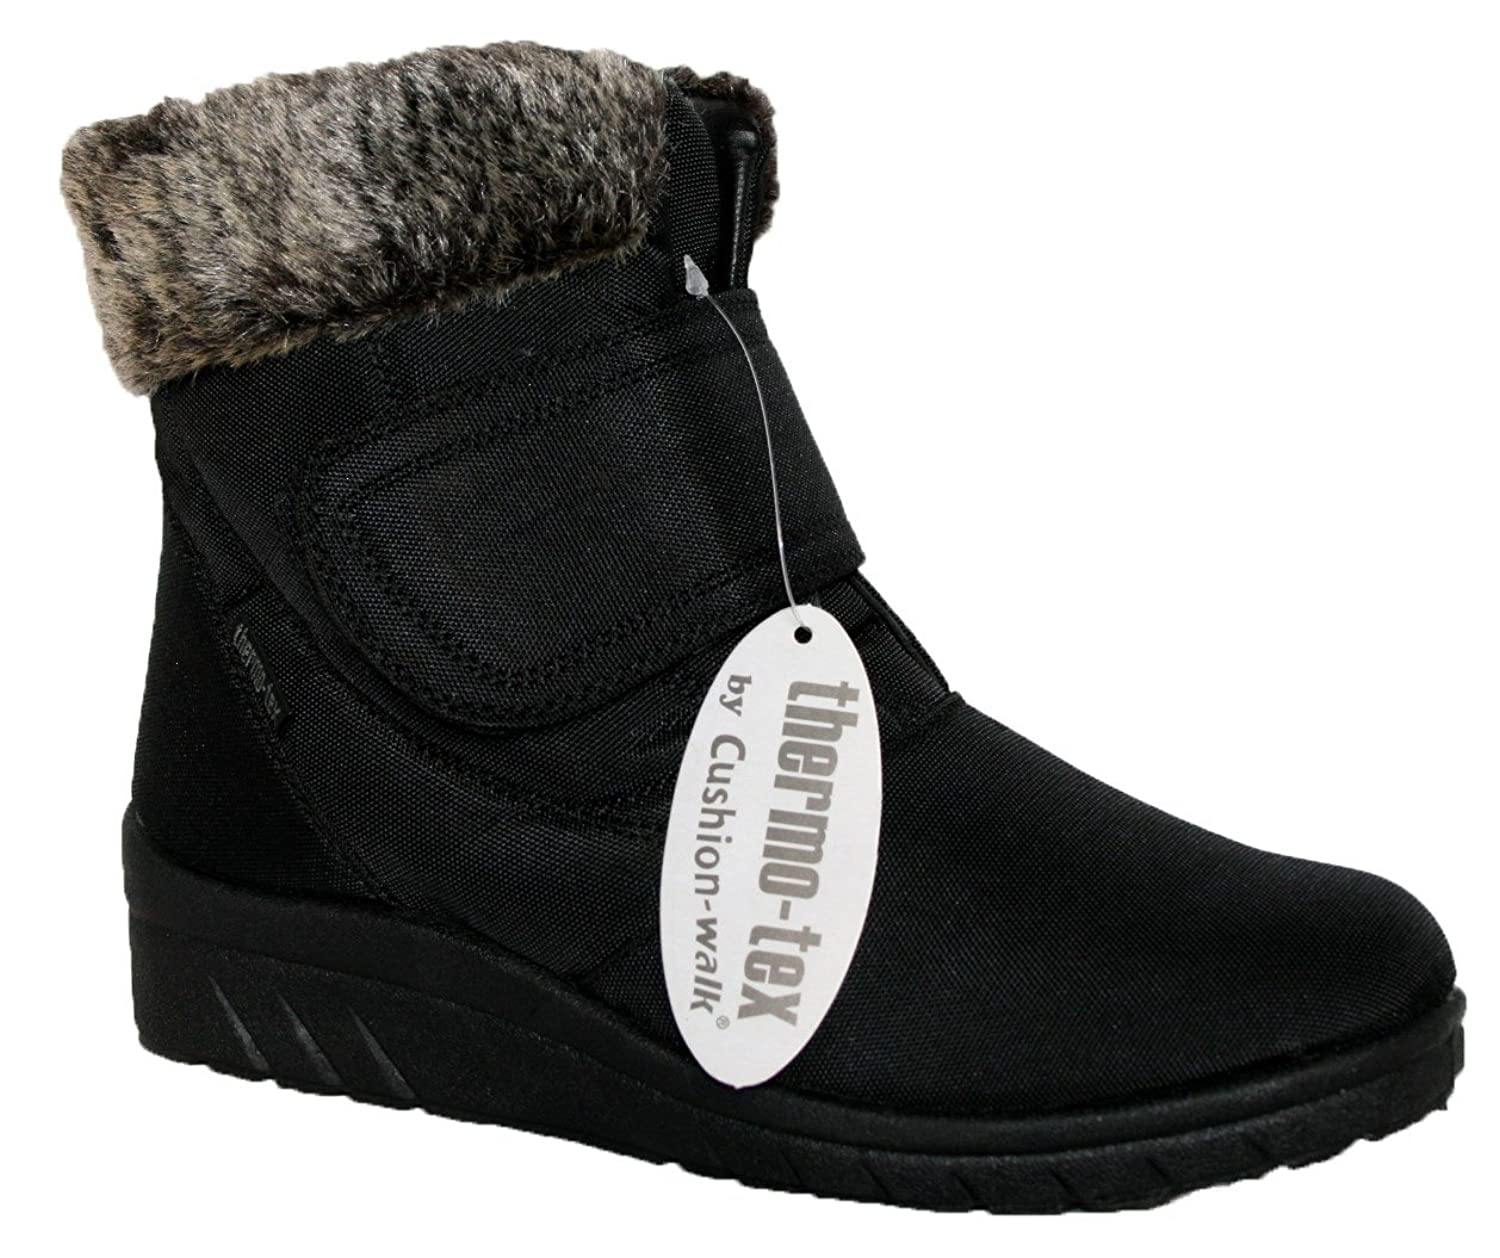 cushion walk thermo tex womens comfort fit winter boots cw81